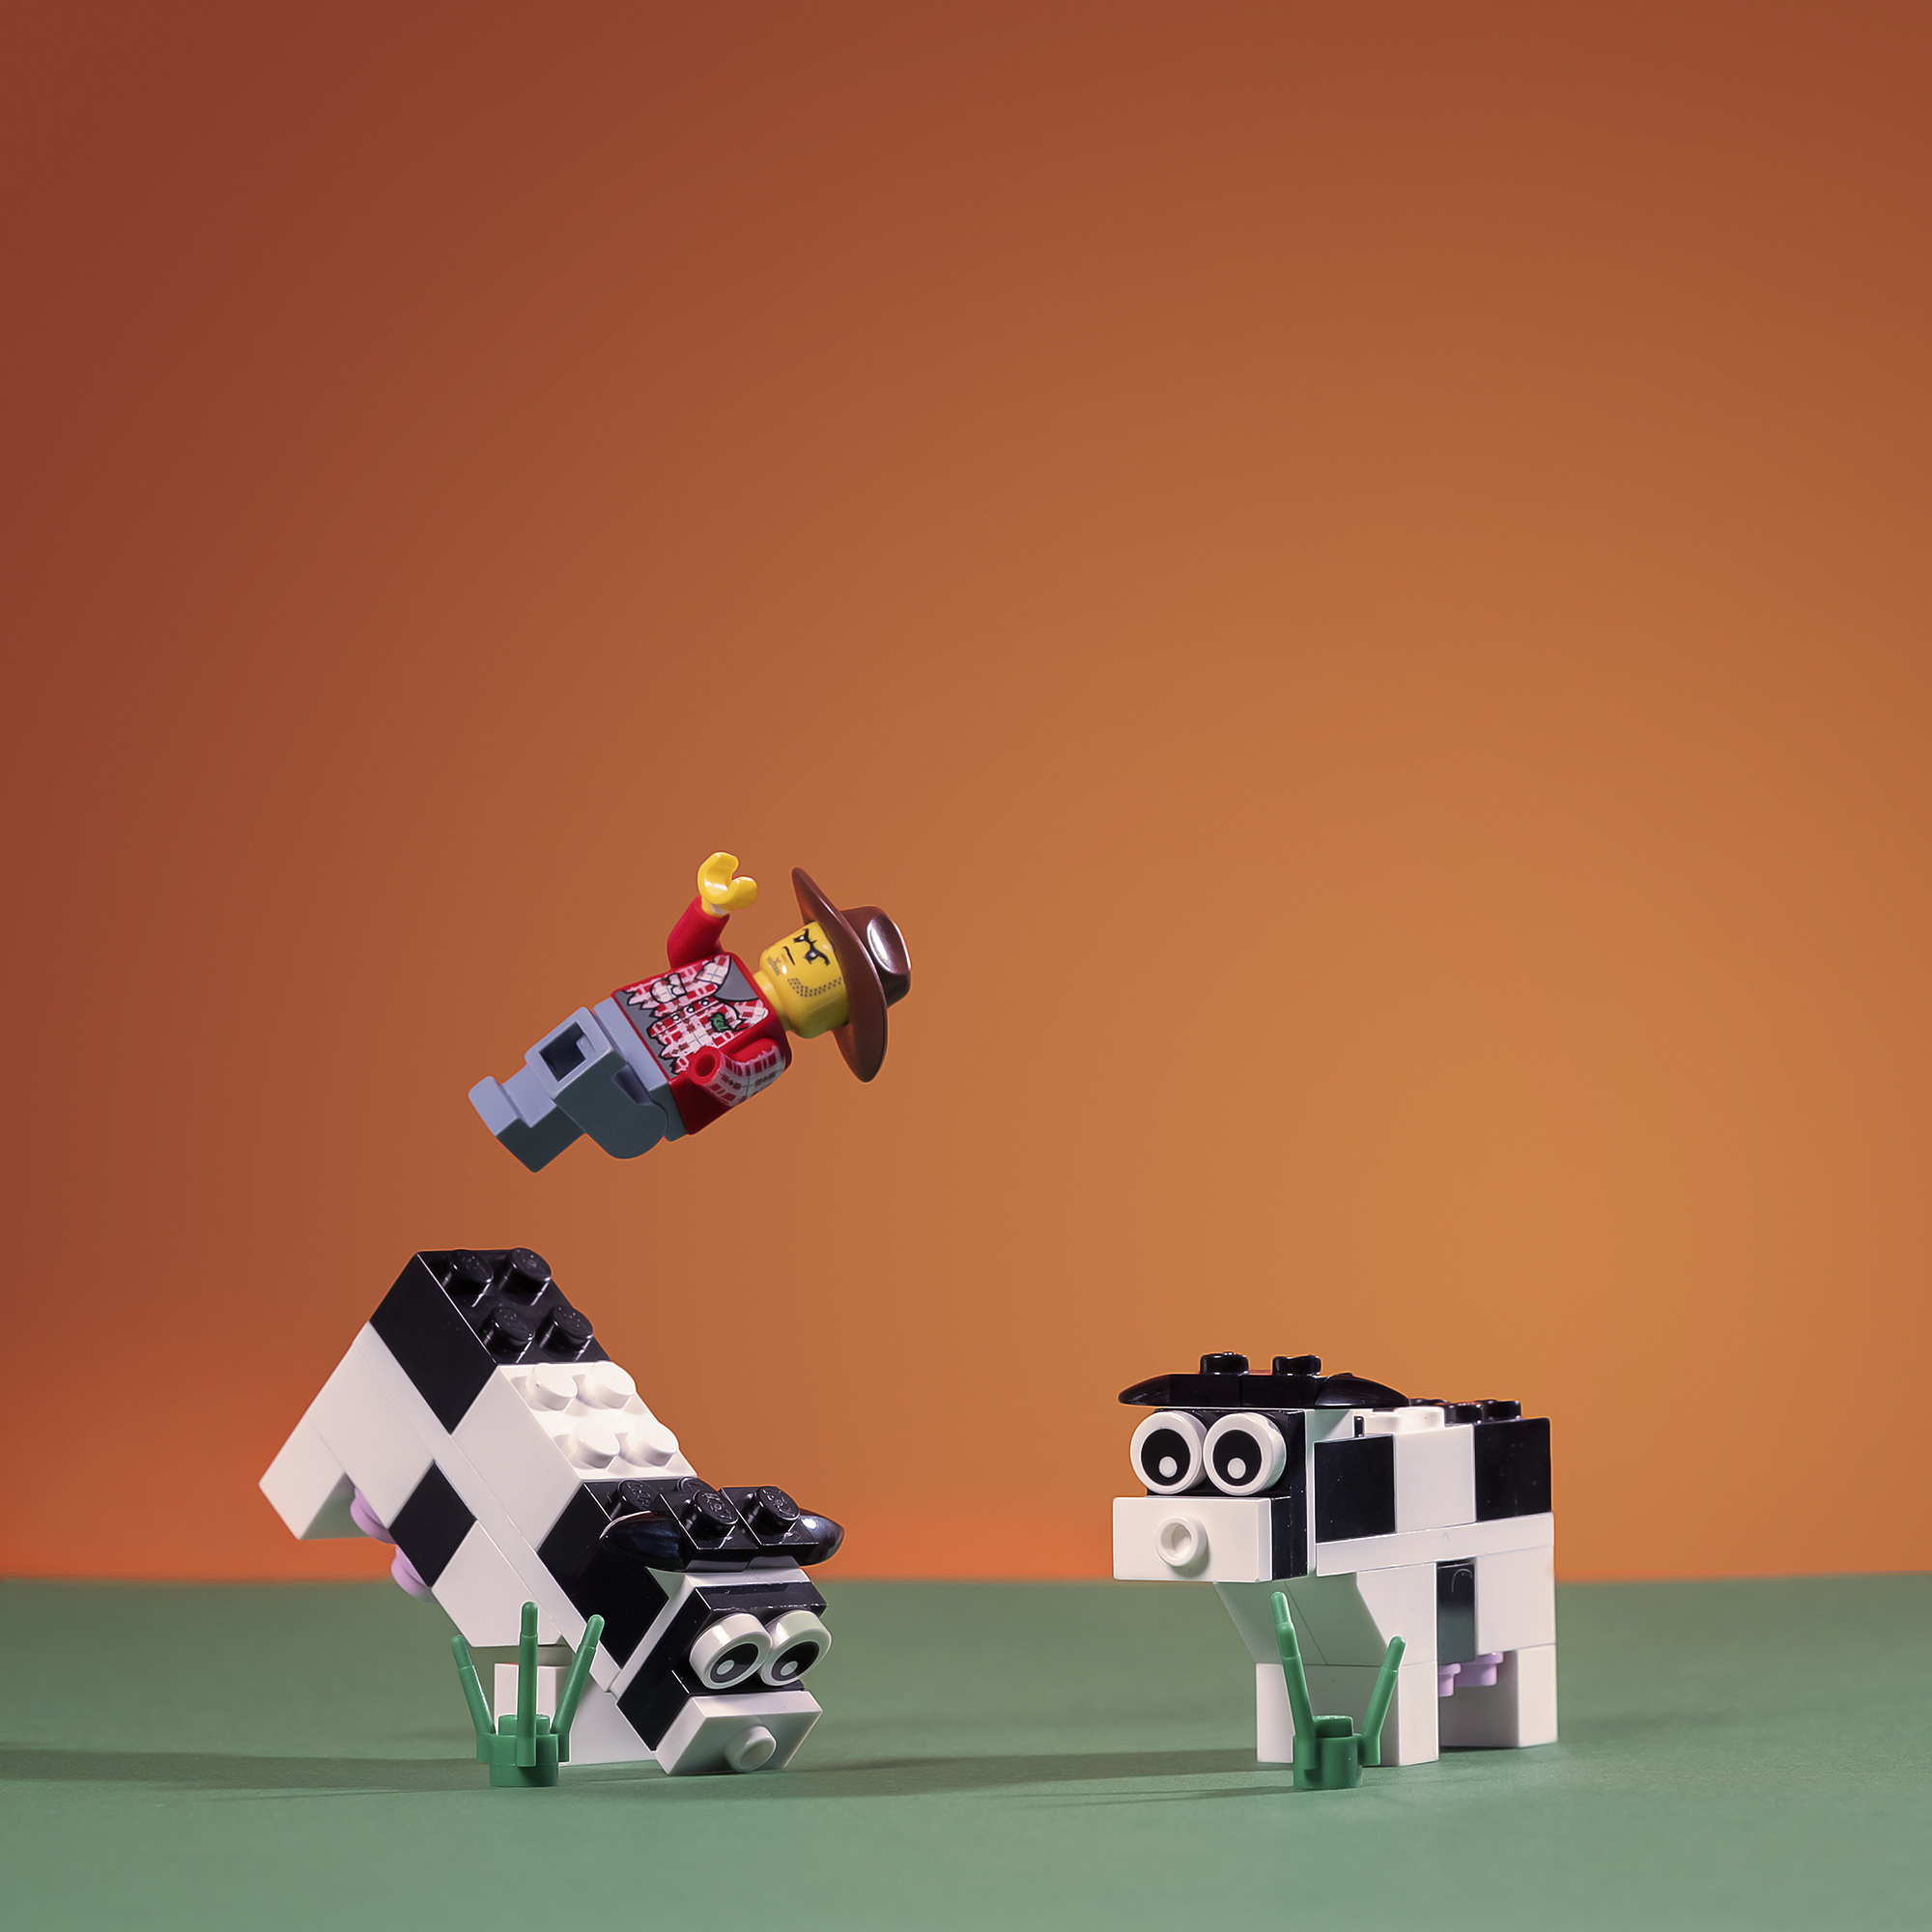 Lego_Photography_Personal_Project_14.jpg